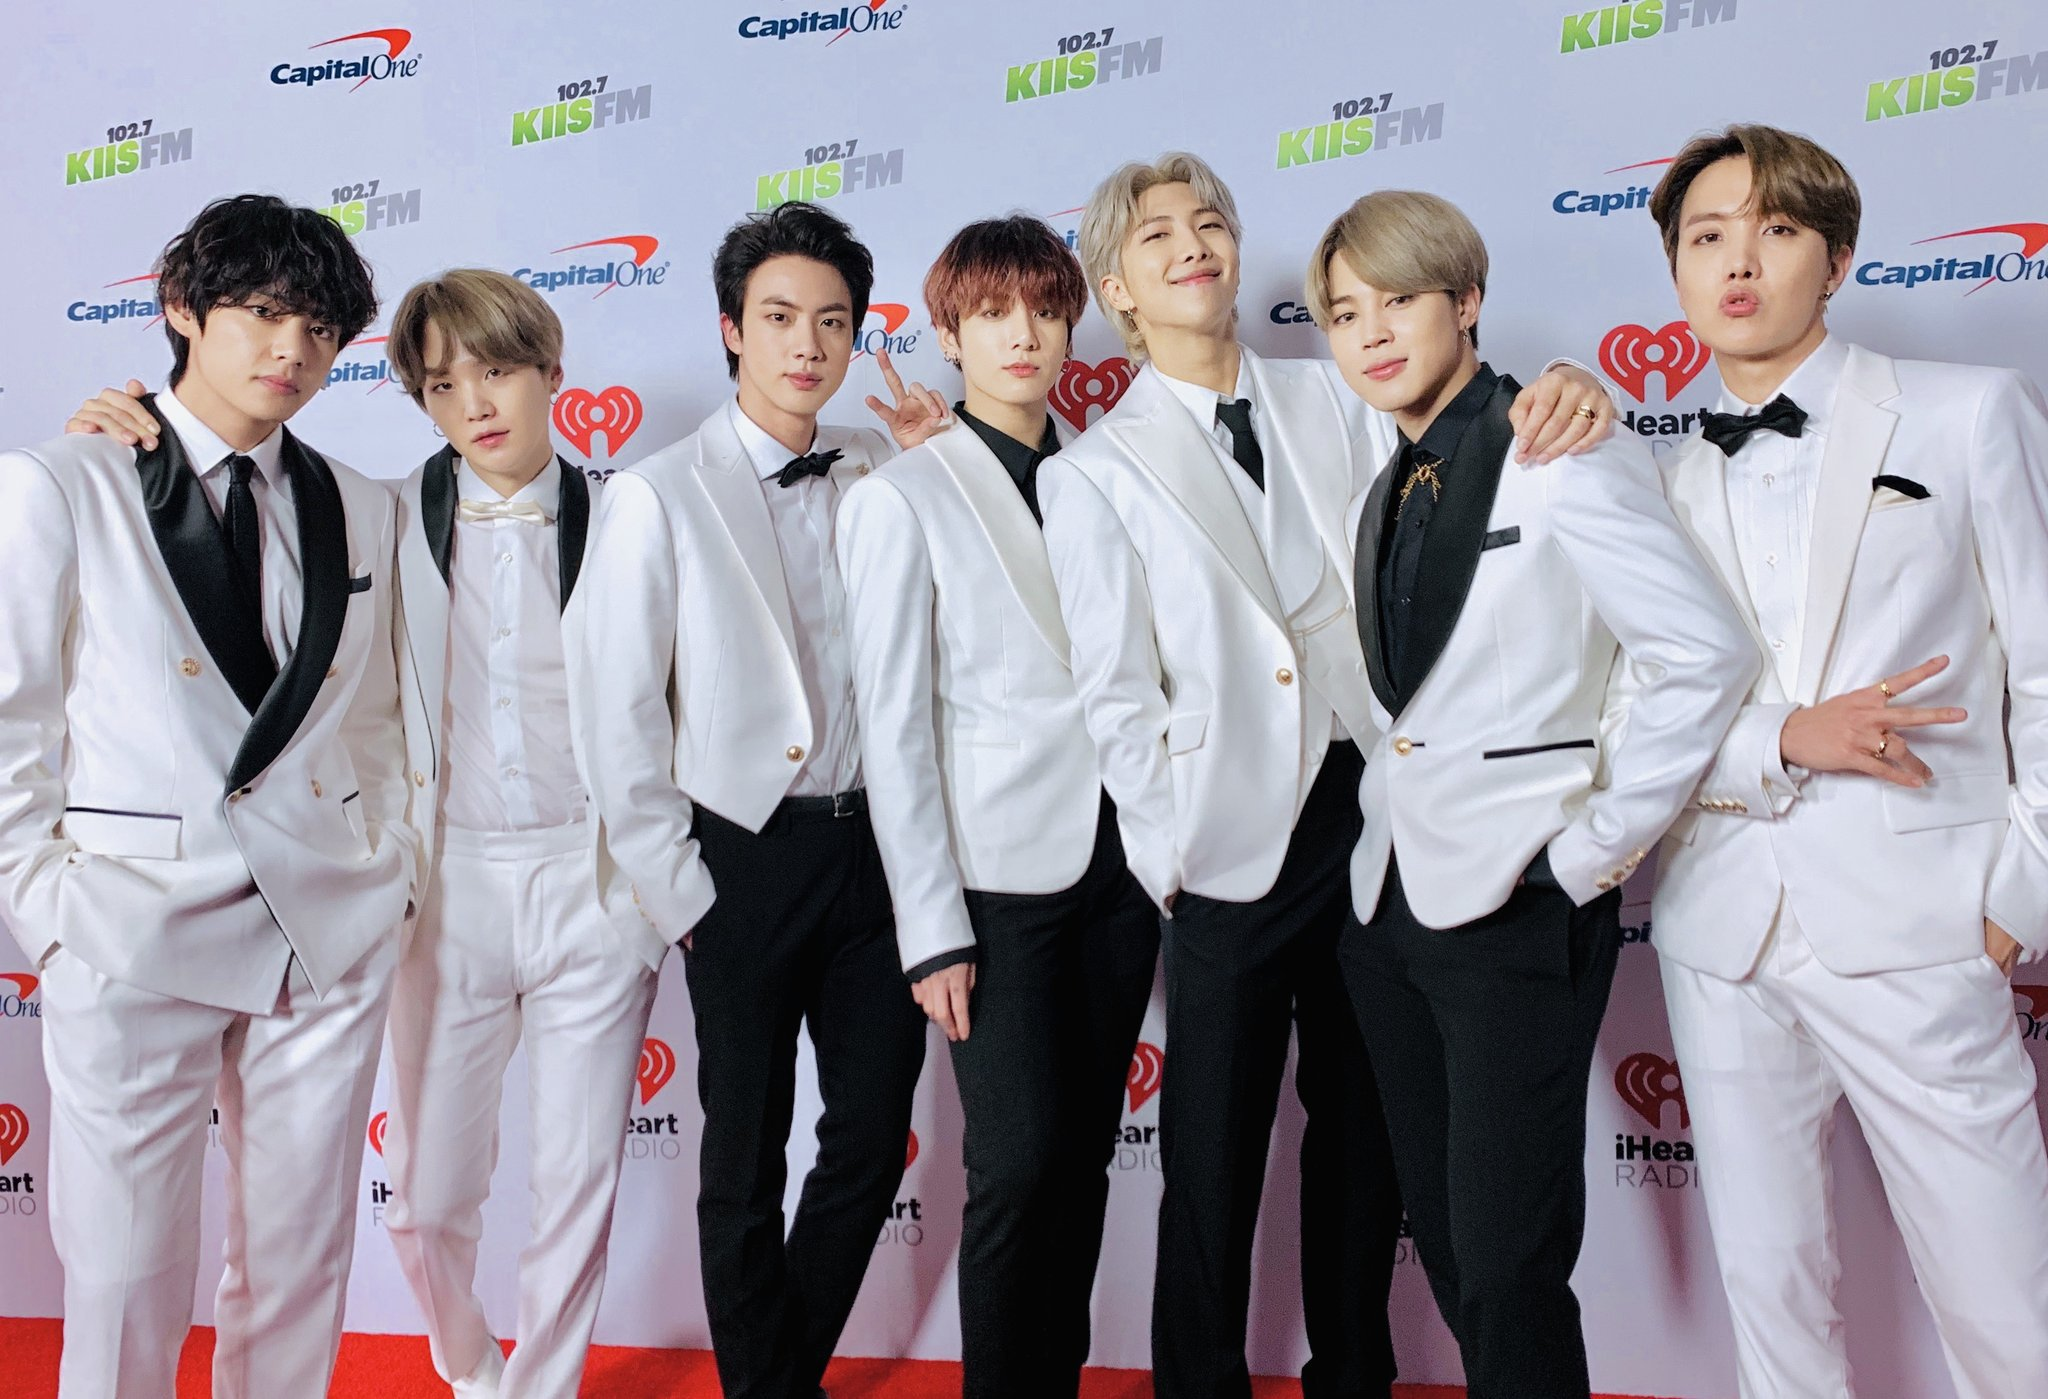 47 ARMY Chipped In Money To Purchase Shutterstock Photo Of BTS ...